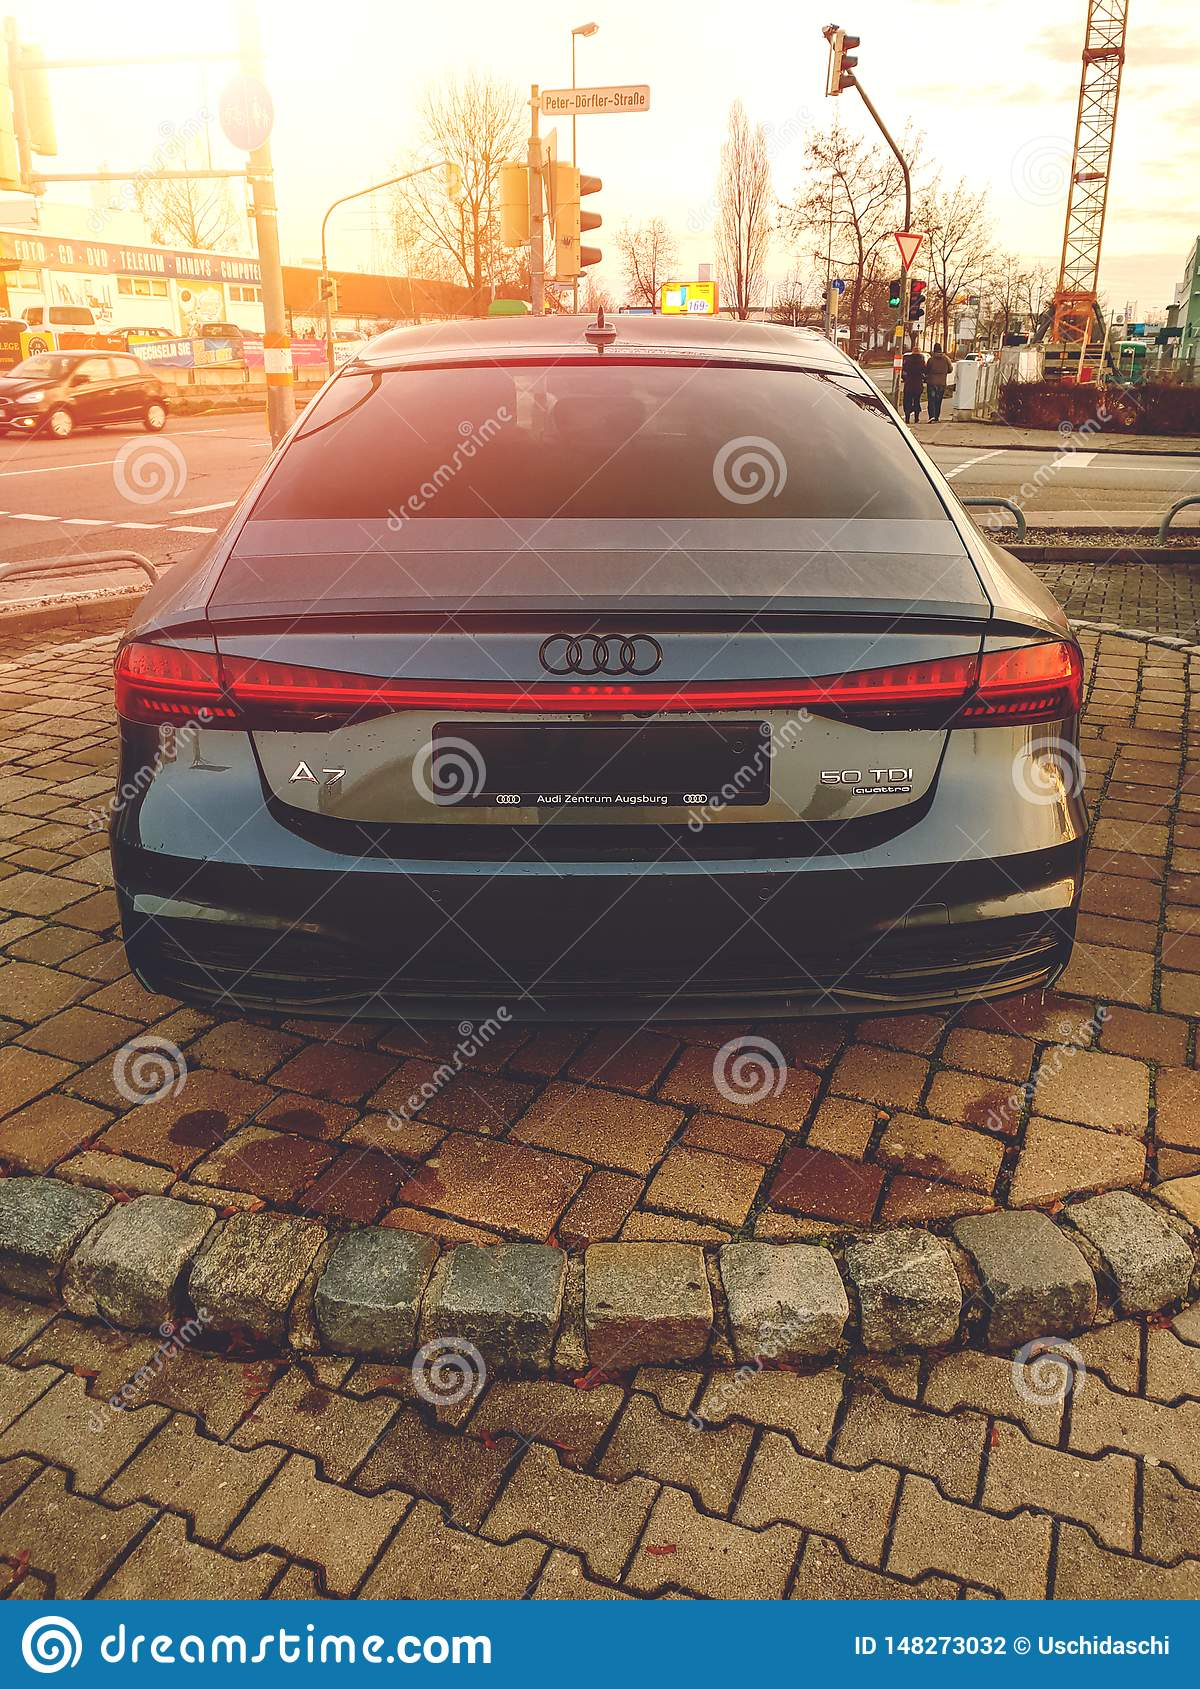 Augsburg, Germany - December 27, 2018: Rear view of black Audi A7 50 TDI Quattro during sunset